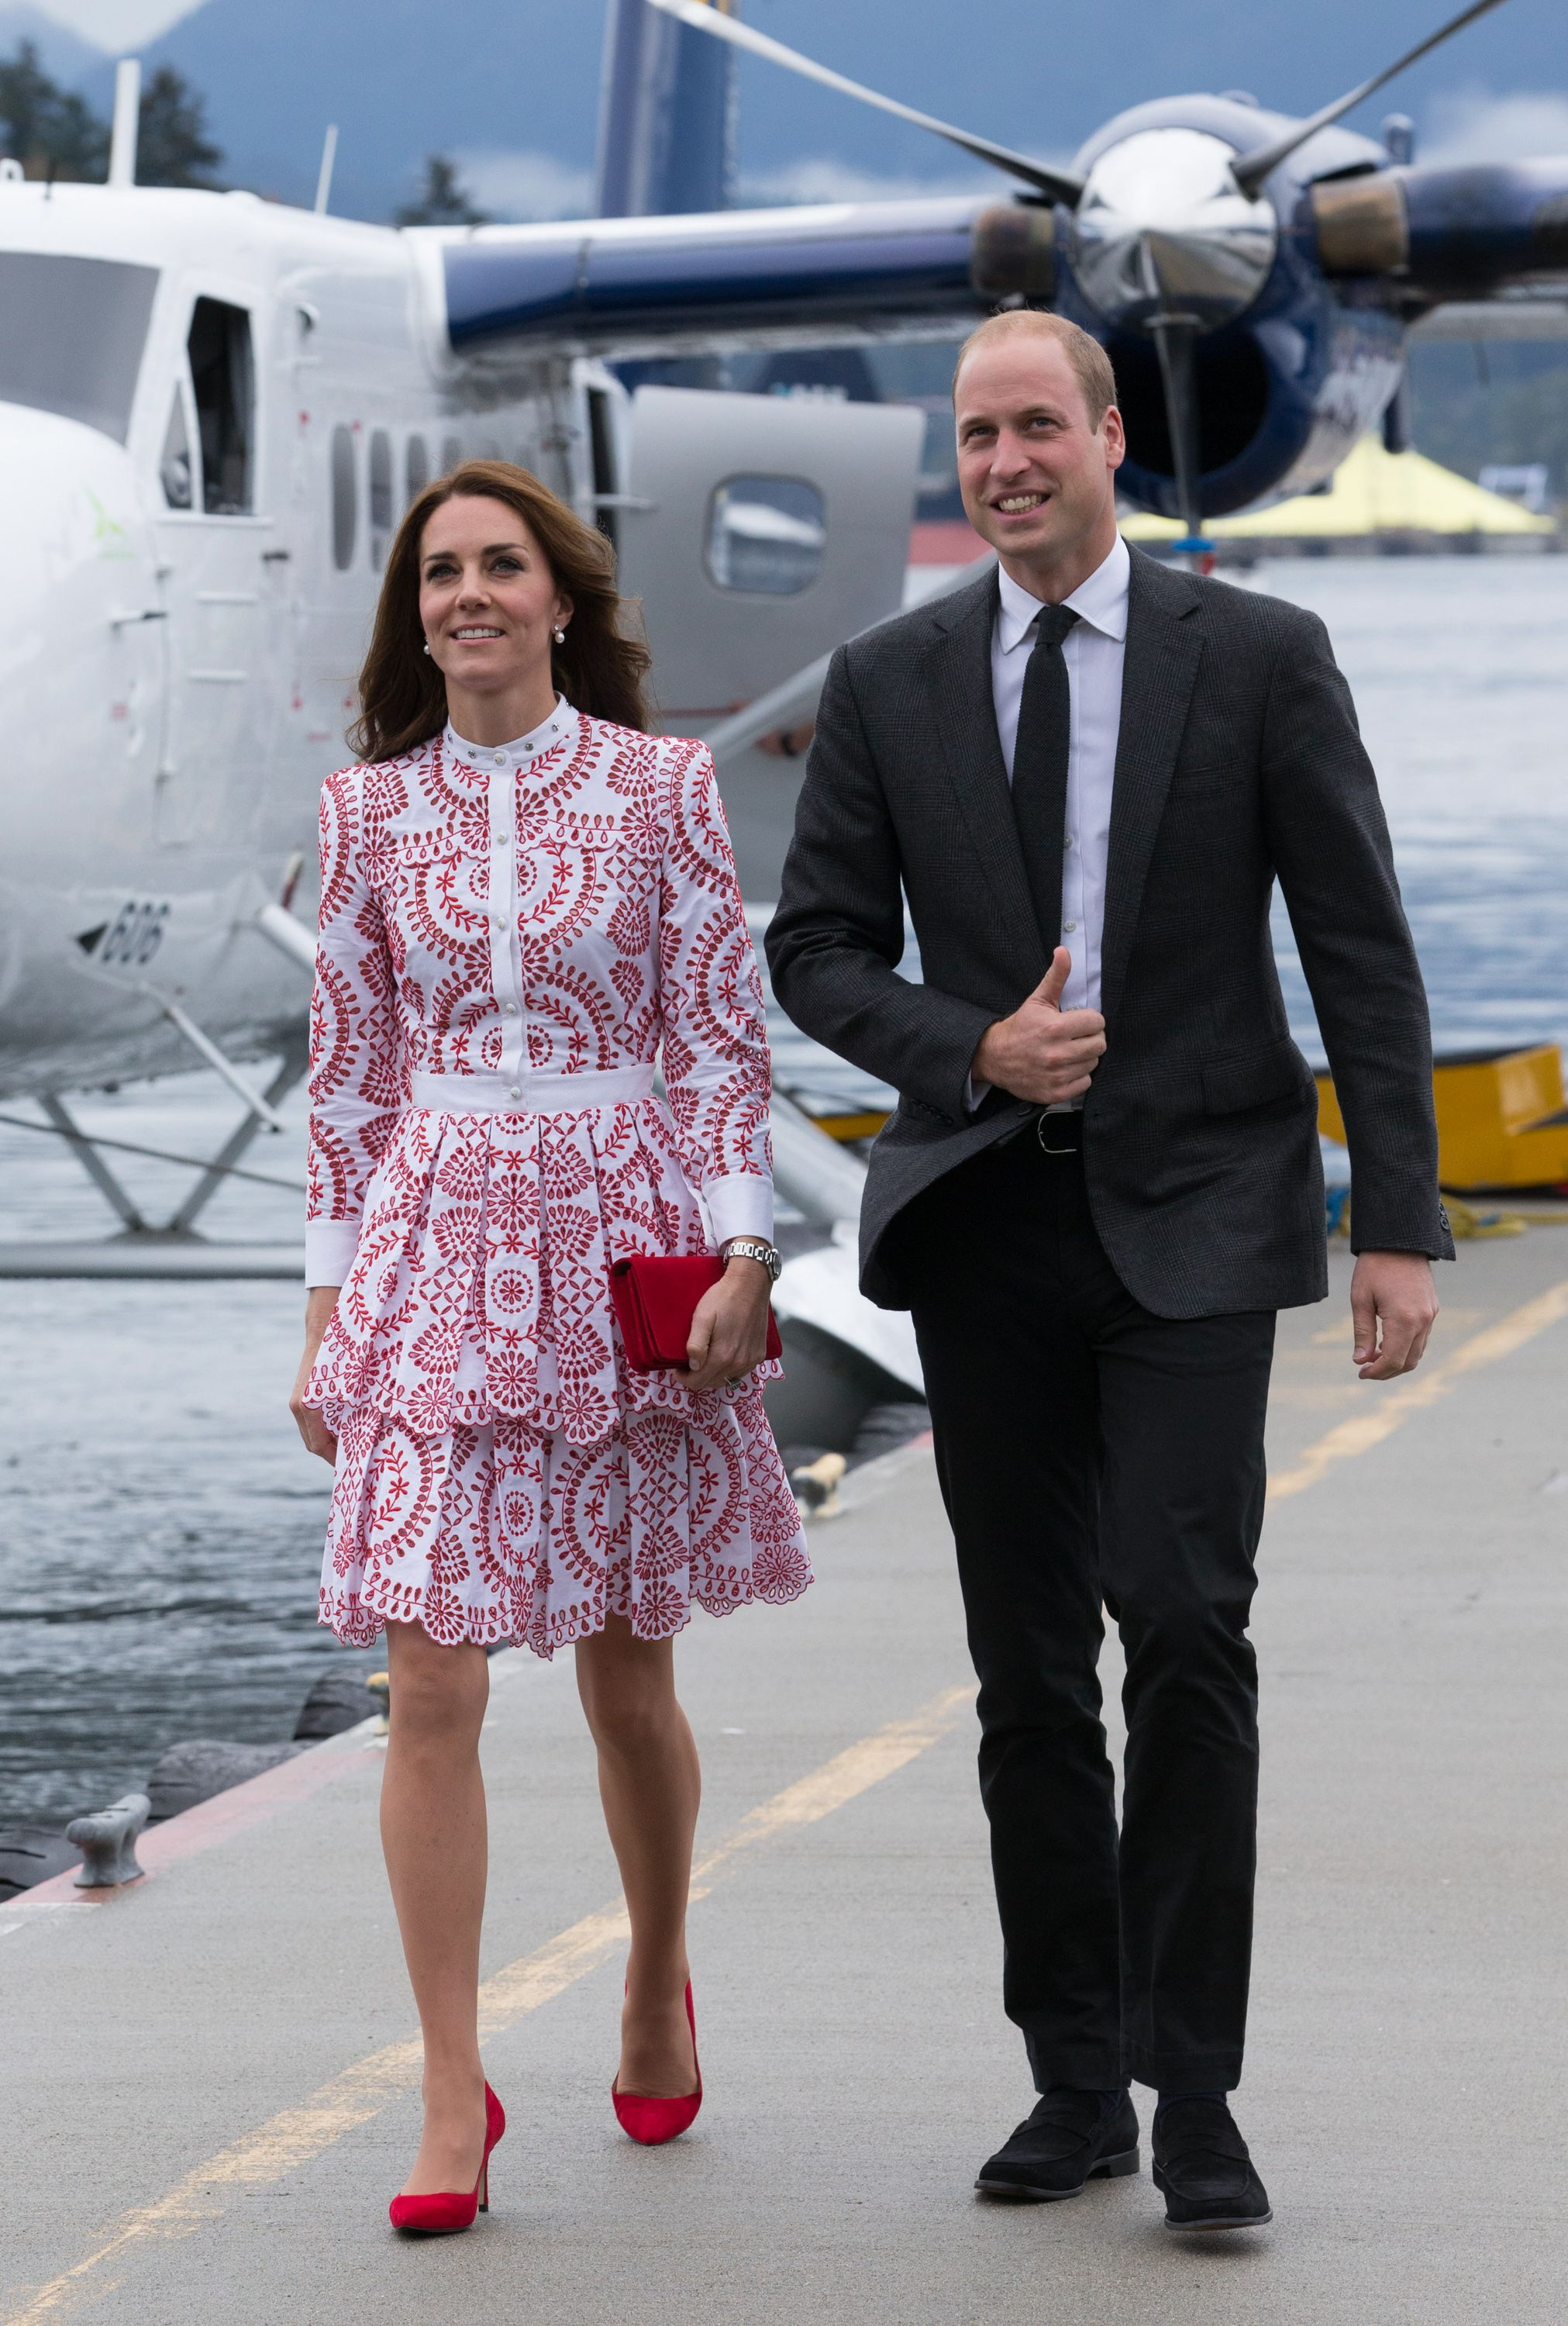 No, William and Kate weren't 'making a point' by flying on a budget airline